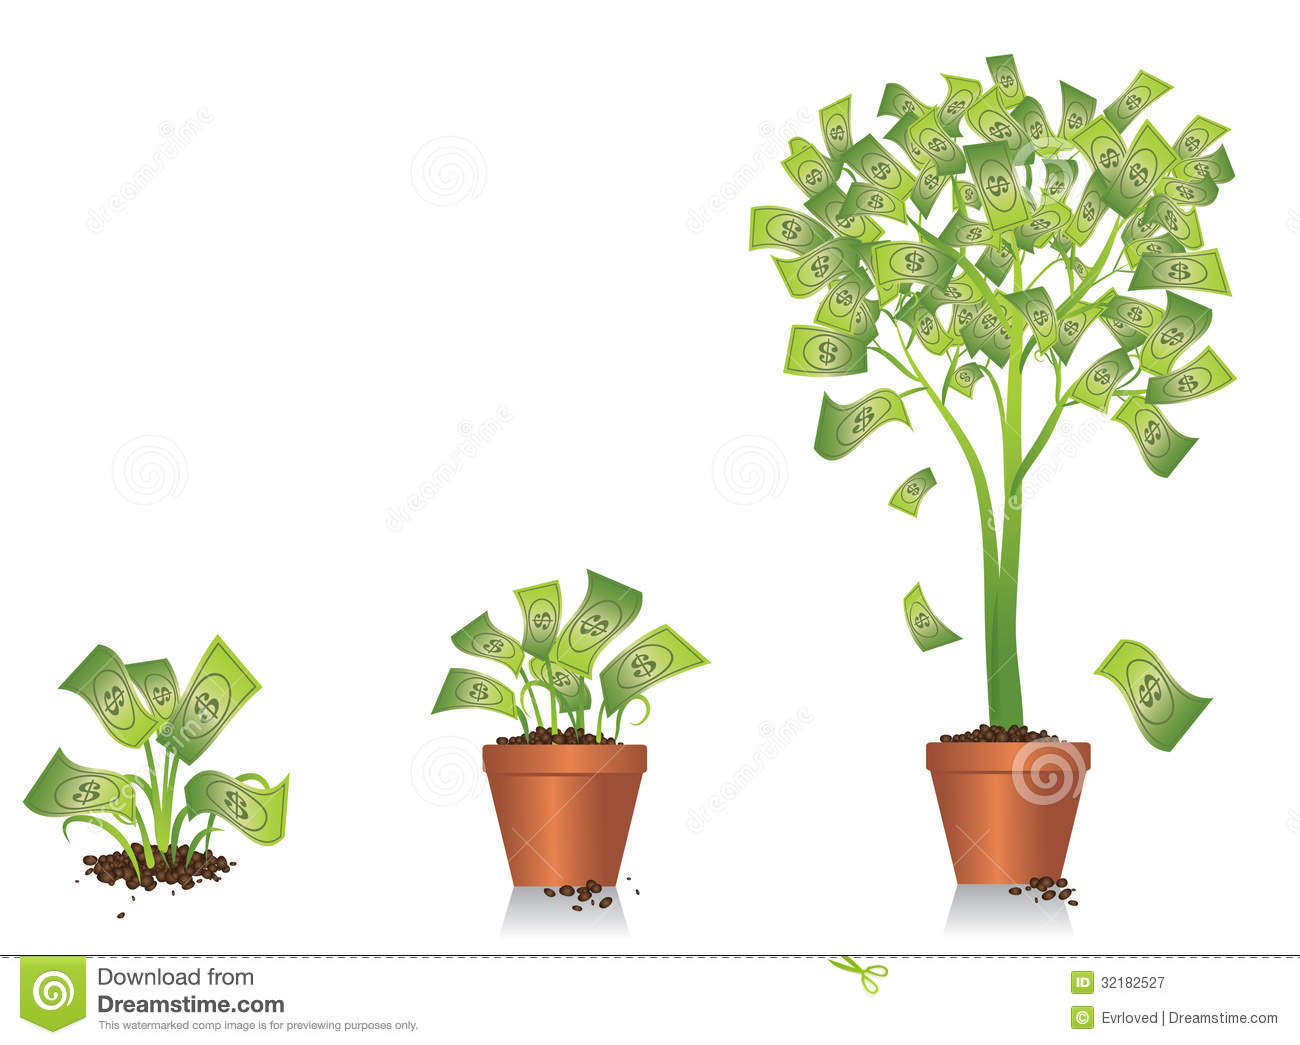 Best Indoor Plants For Clean Air Money Tree Growing Royalty Free Stock Photography Image